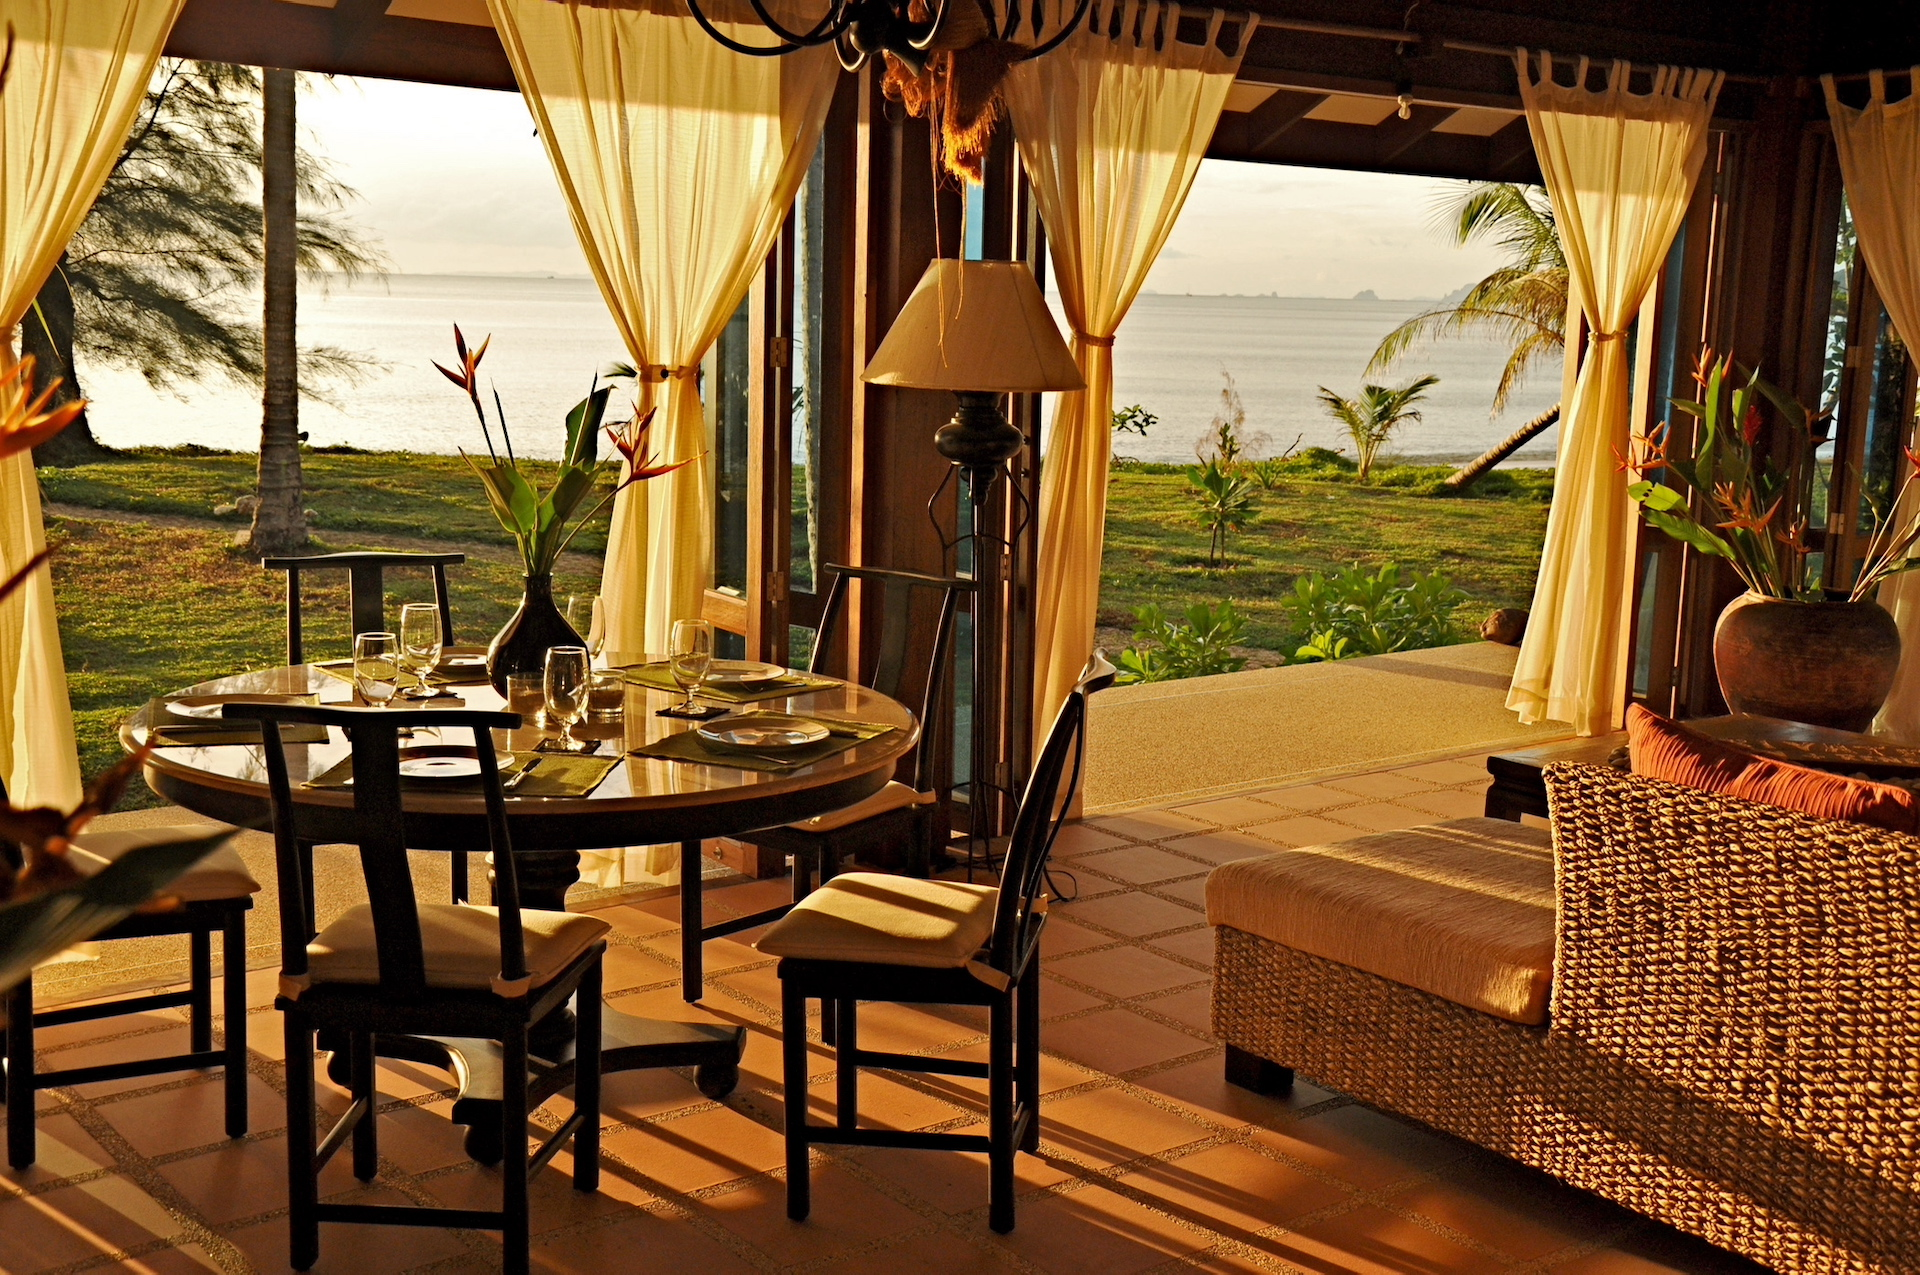 Exclusive 3 Night Package in a Luxurious Beach Villa Image